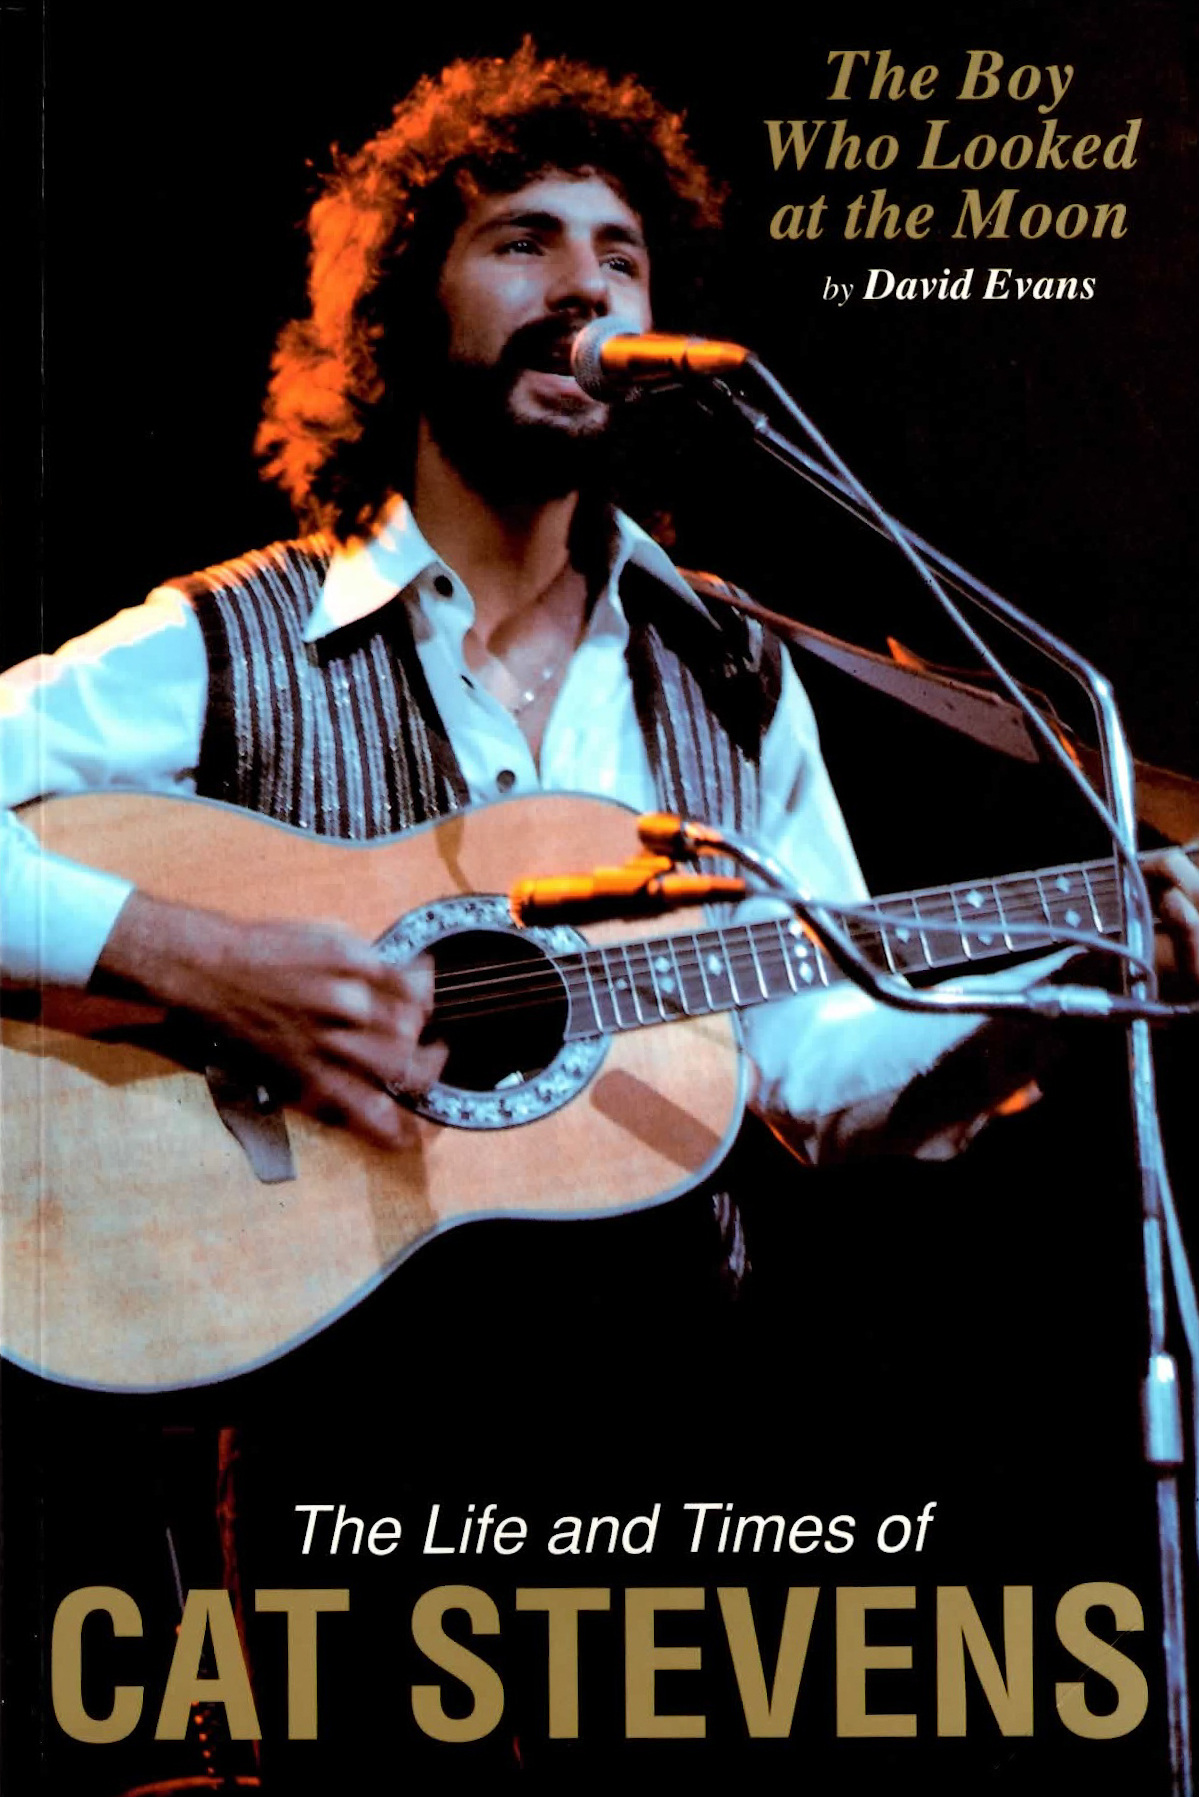 THE LIFE AND TIMES OF CAT STEVENS